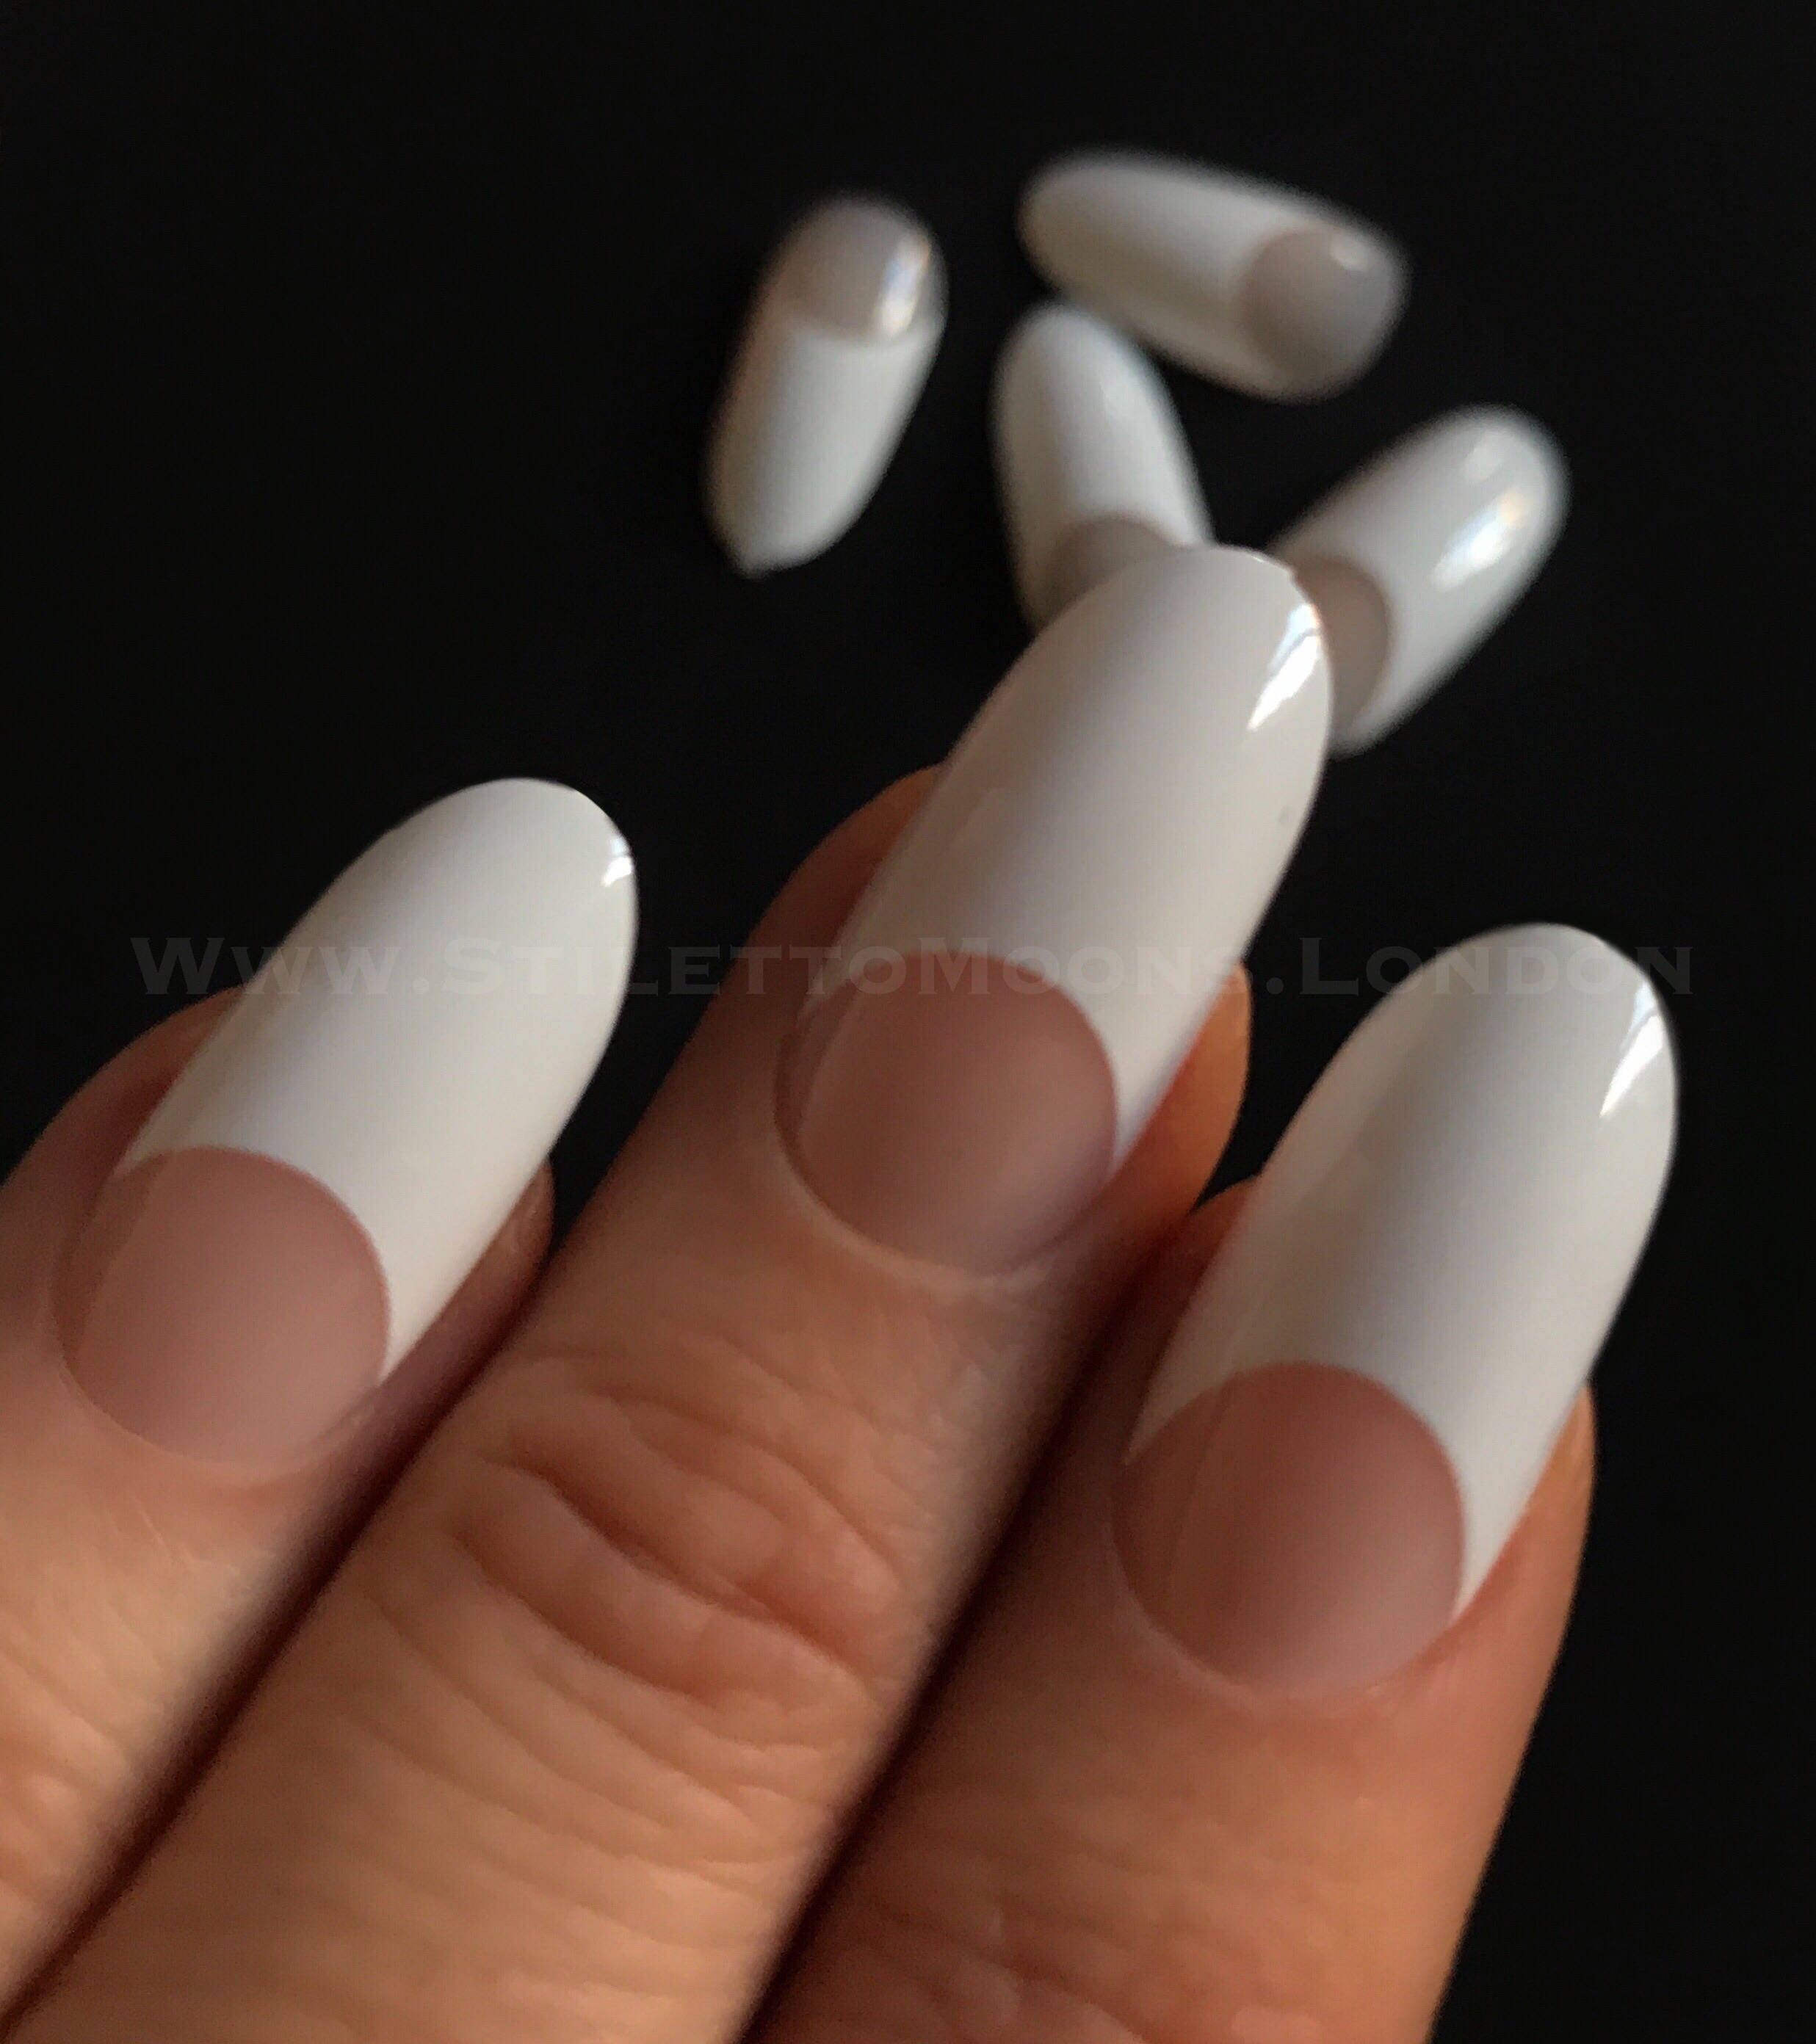 Colorful French Manicure Stiletto Nails Image - Nail Art Ideas ...